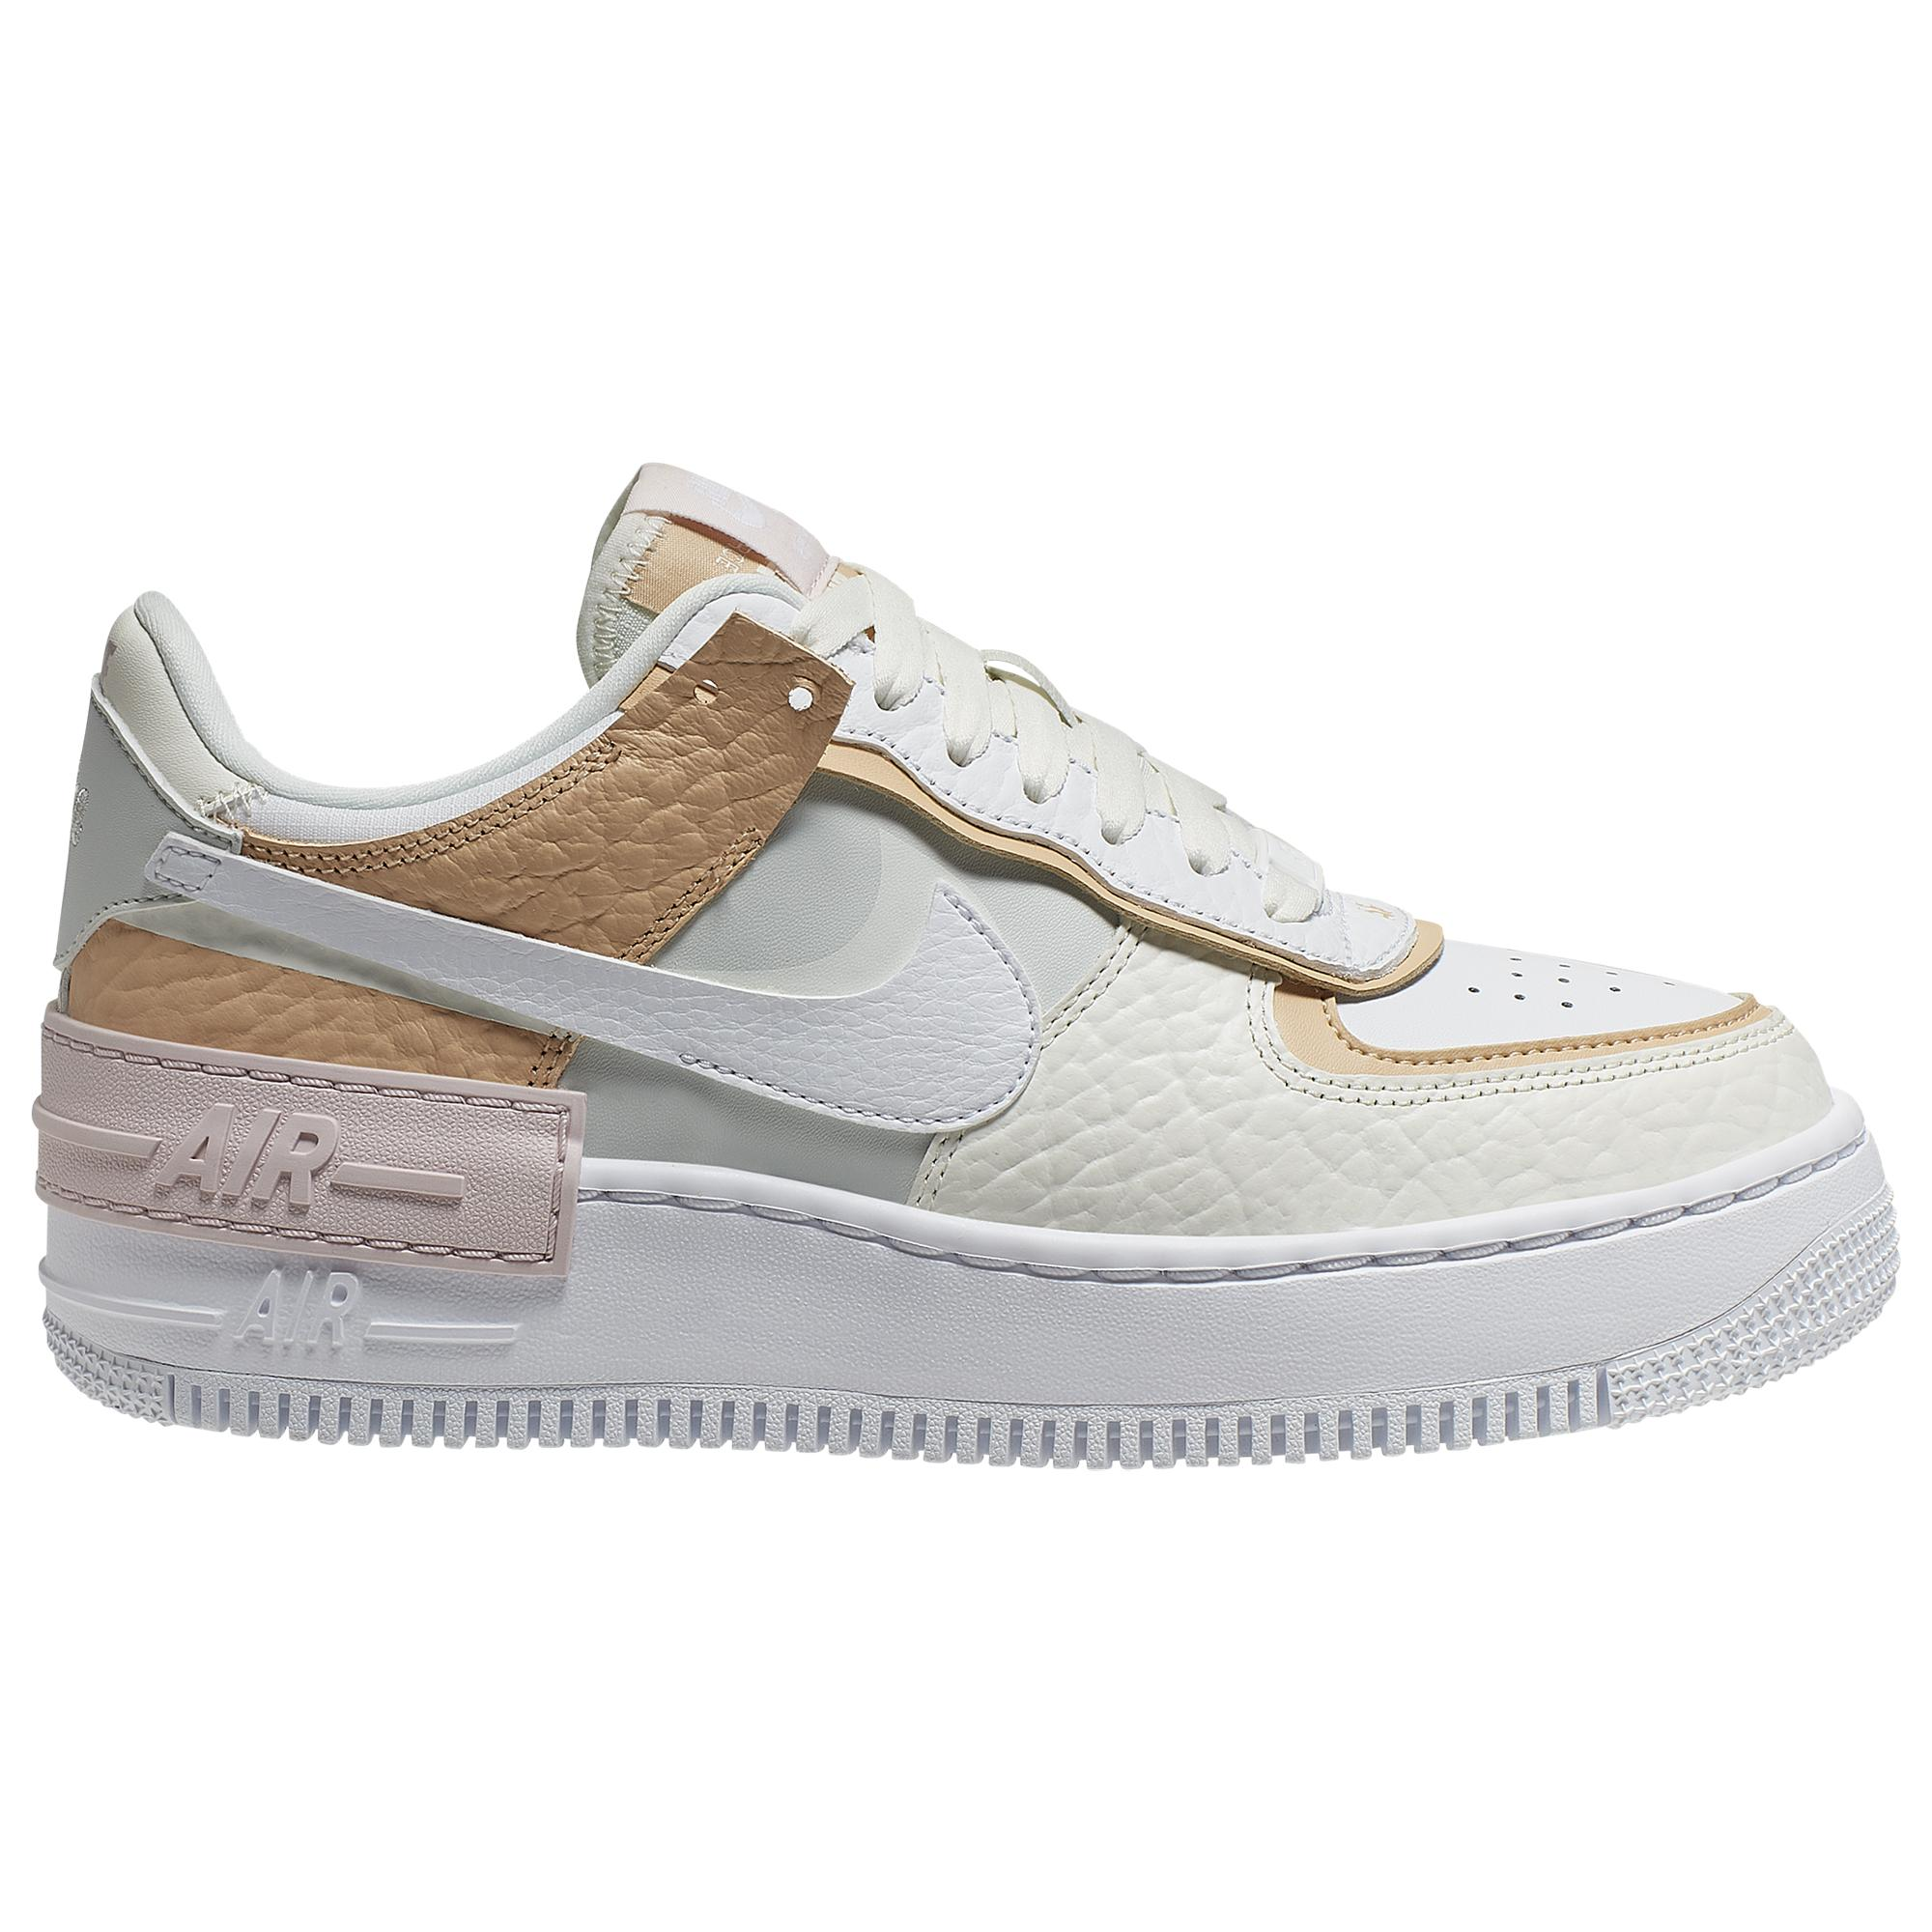 Nike Leather Air Force 1 Shadow Basketball Shoes in White - Lyst